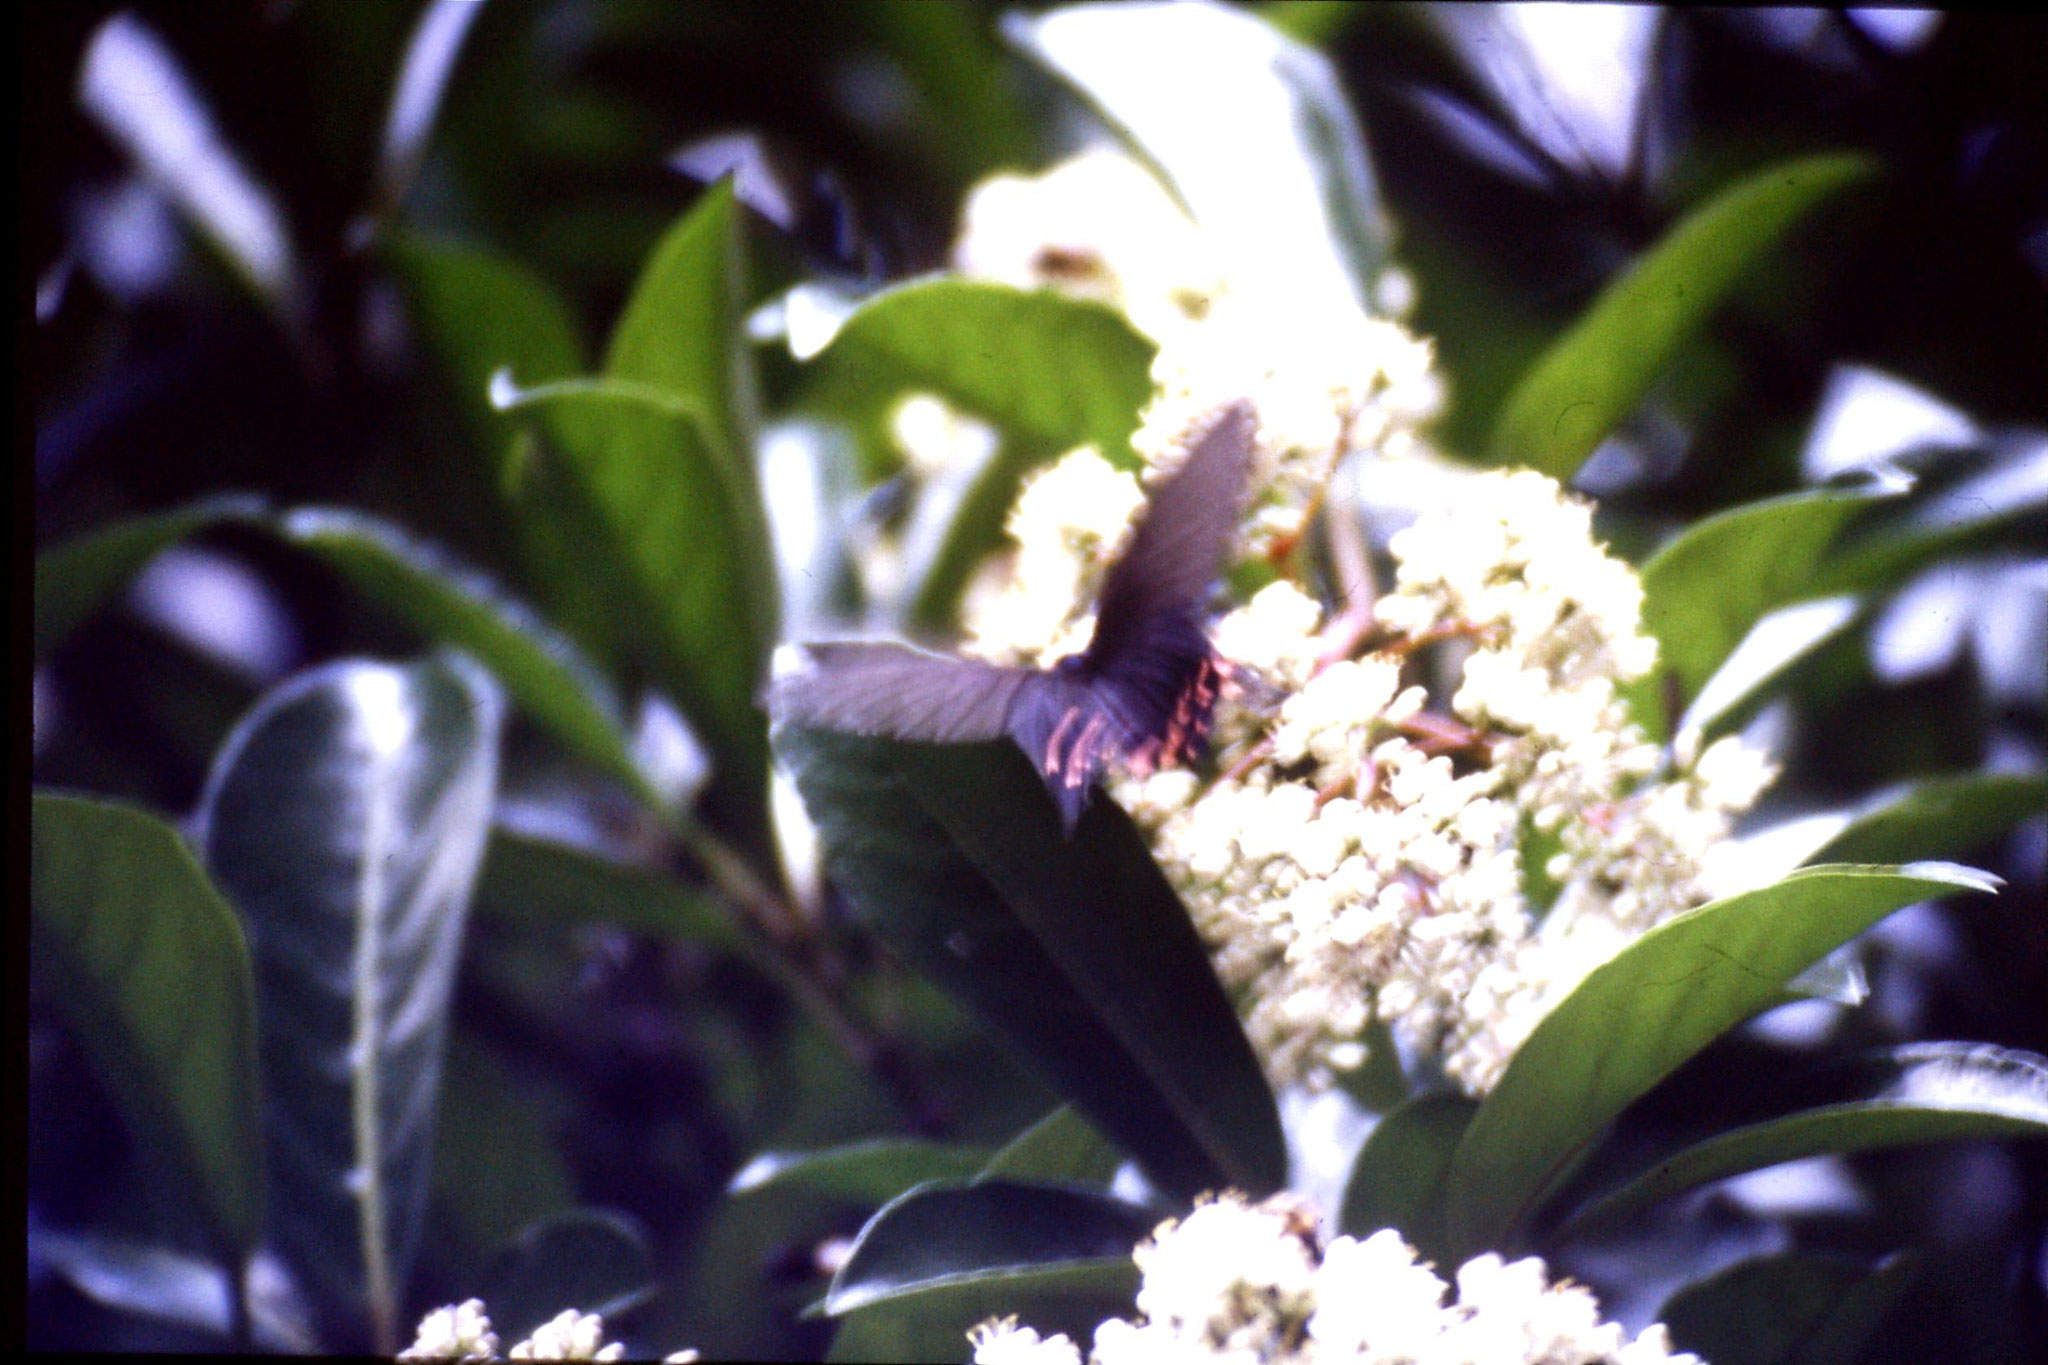 8/6/1989: 15: Hangzhou, black butterfly with orange spots